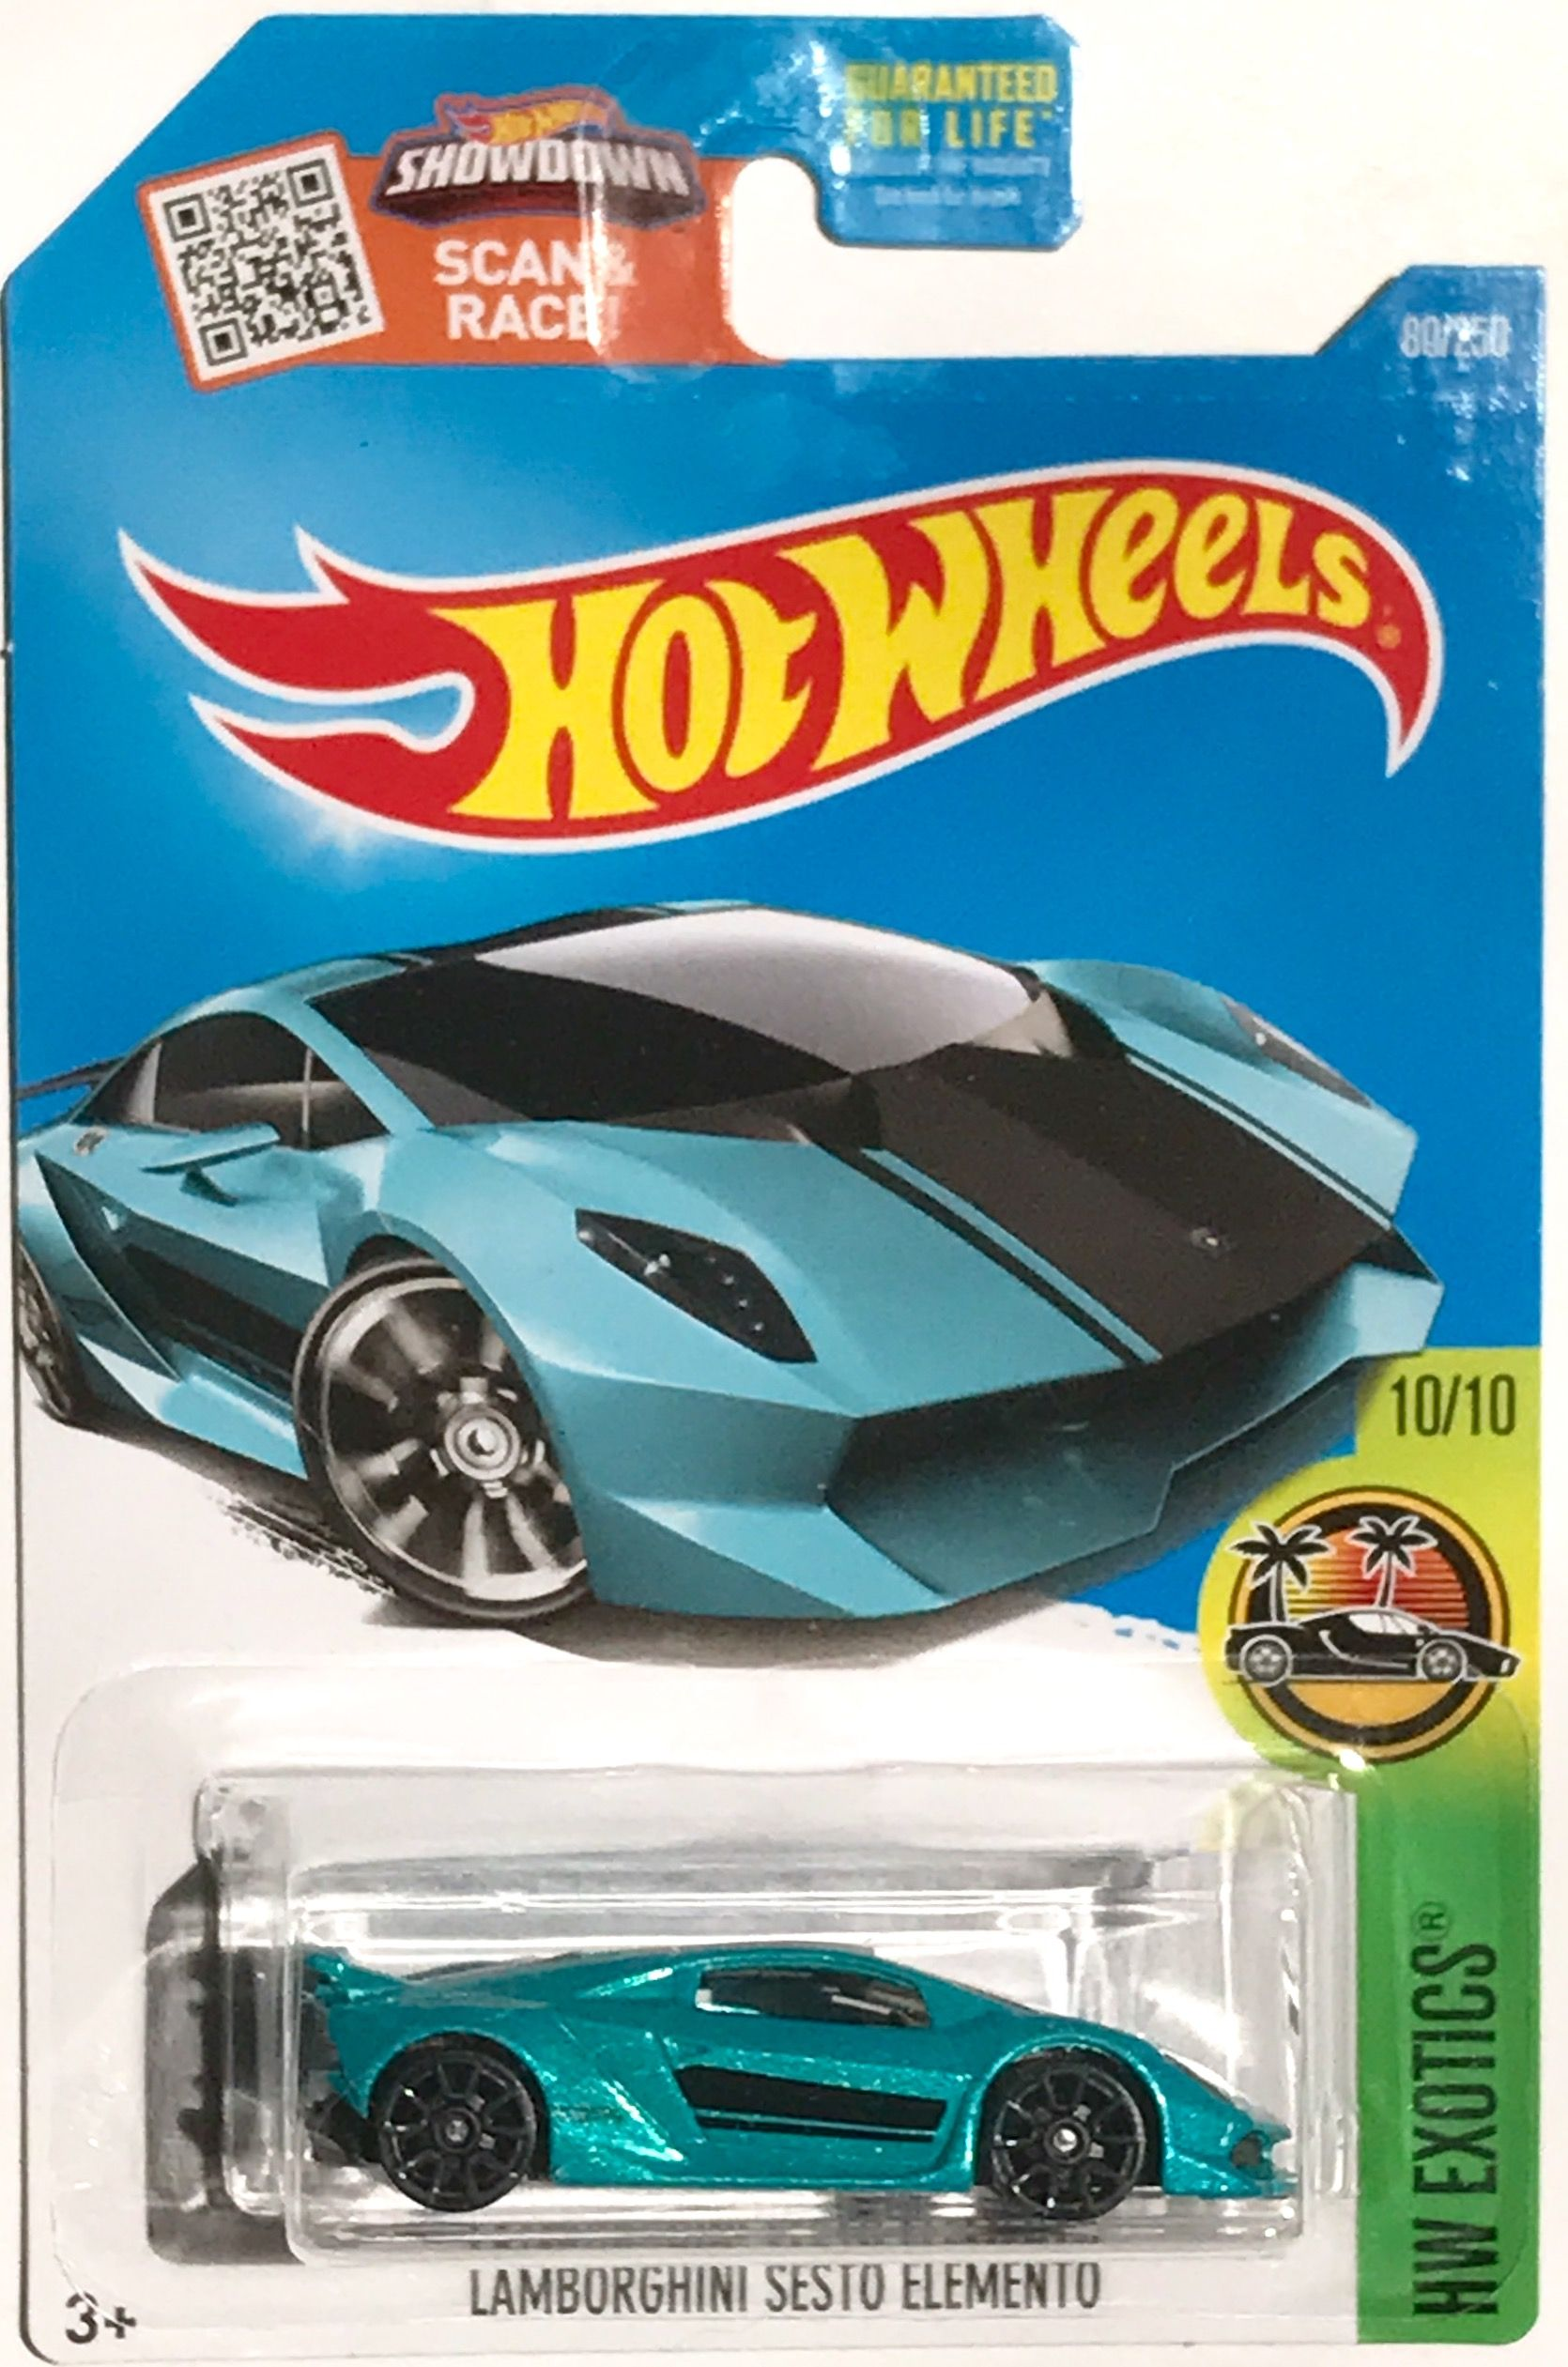 Pin By Alfred Ransom On Hot Wheels Hot Wheels Toys Hot Wheels Hot Wheels Display